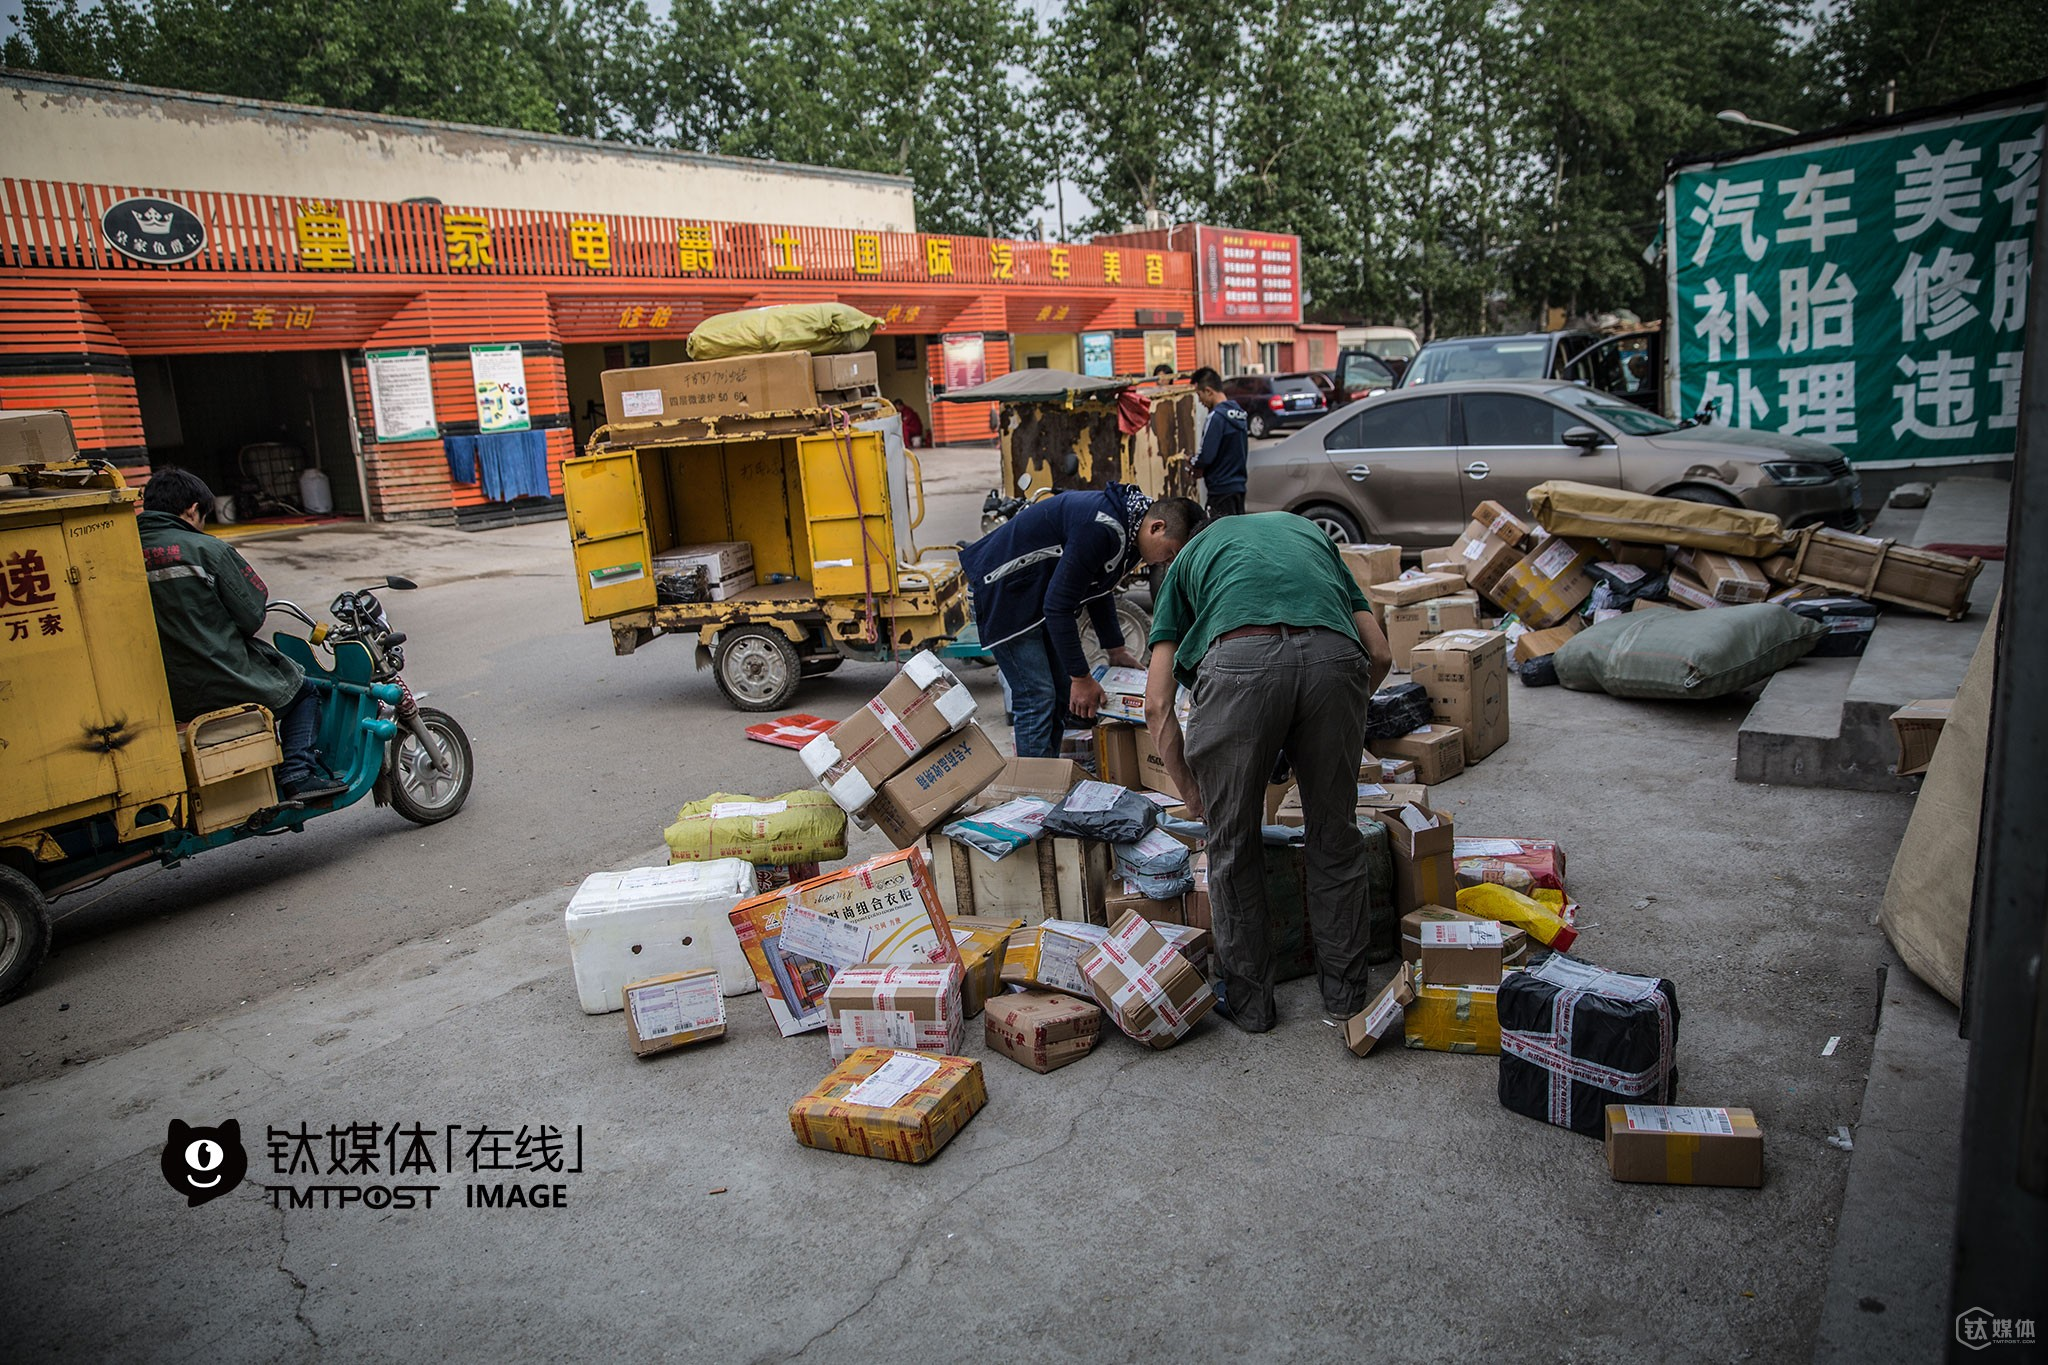 It was in the morning of April, 29th, 2016. Some deliverymen were sorting out packages and loading them on trucks at the allocating center of an express company at Chaoyang District of Beijing.